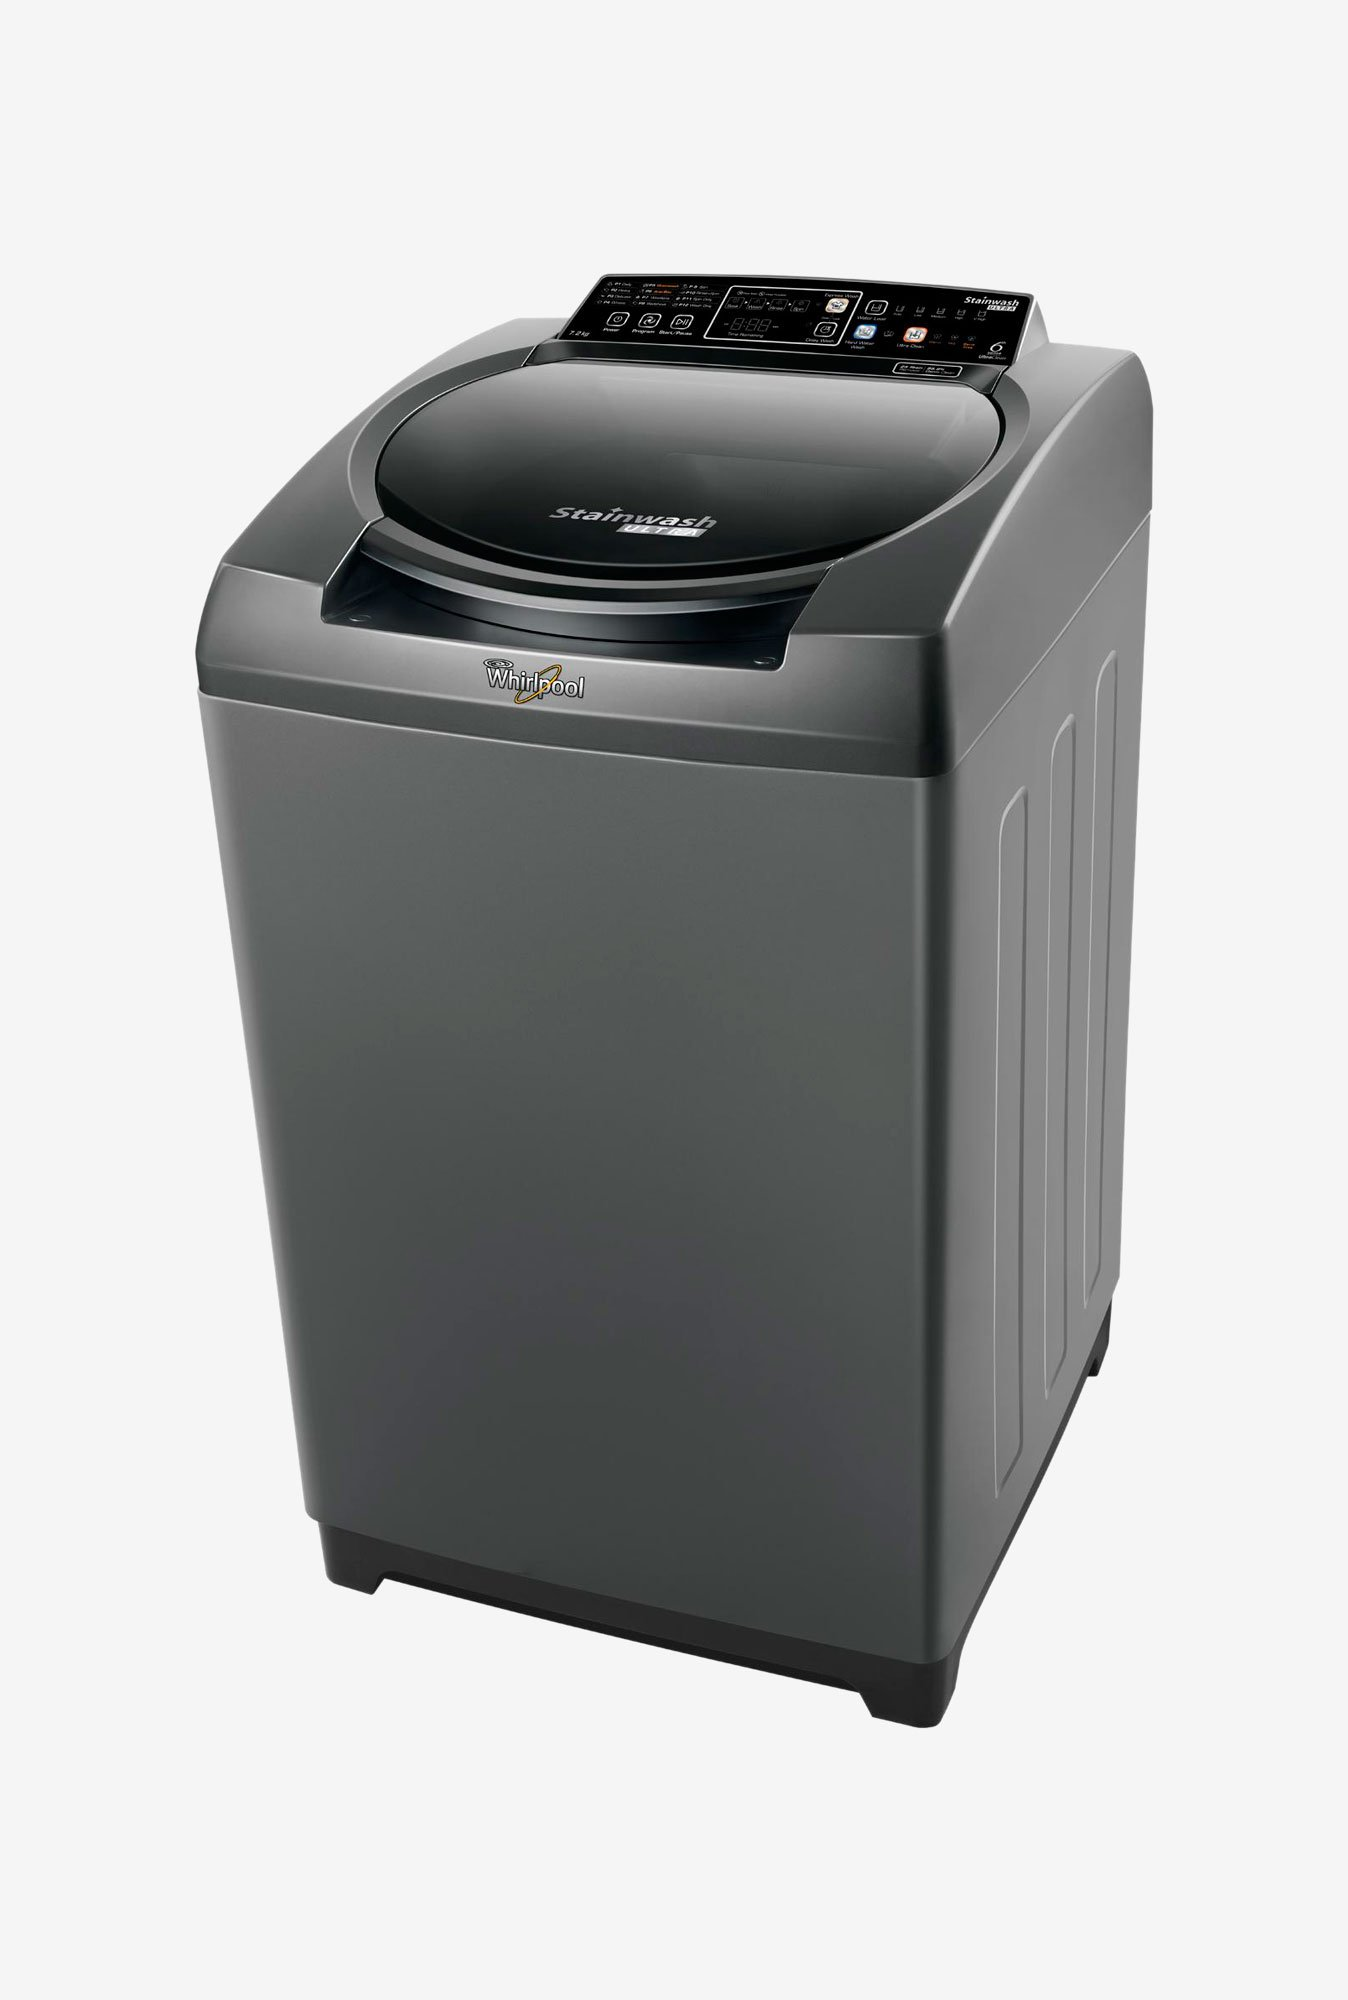 Whirlpool Stainwash Ultra UL72H 7.2 Kg Washing Machine Grey